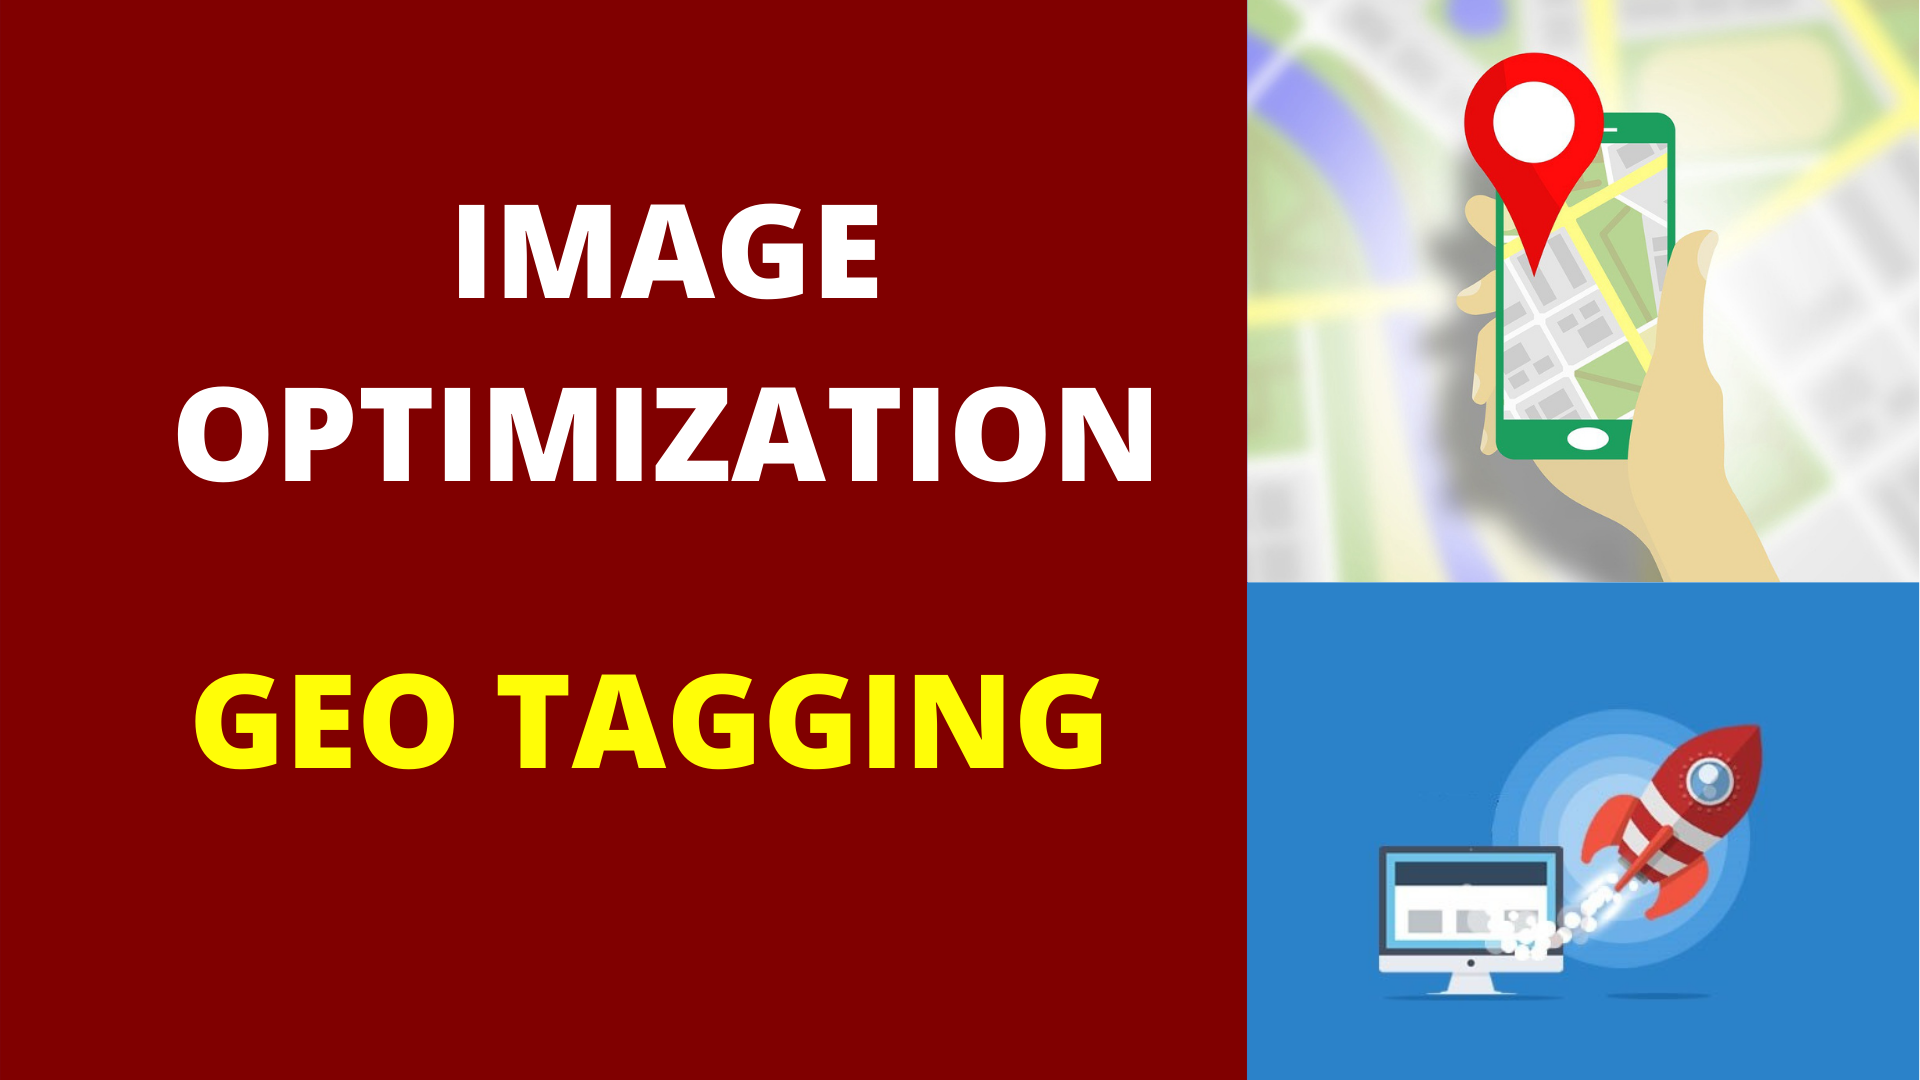 I will do image optimization with geotagging for super local SEO